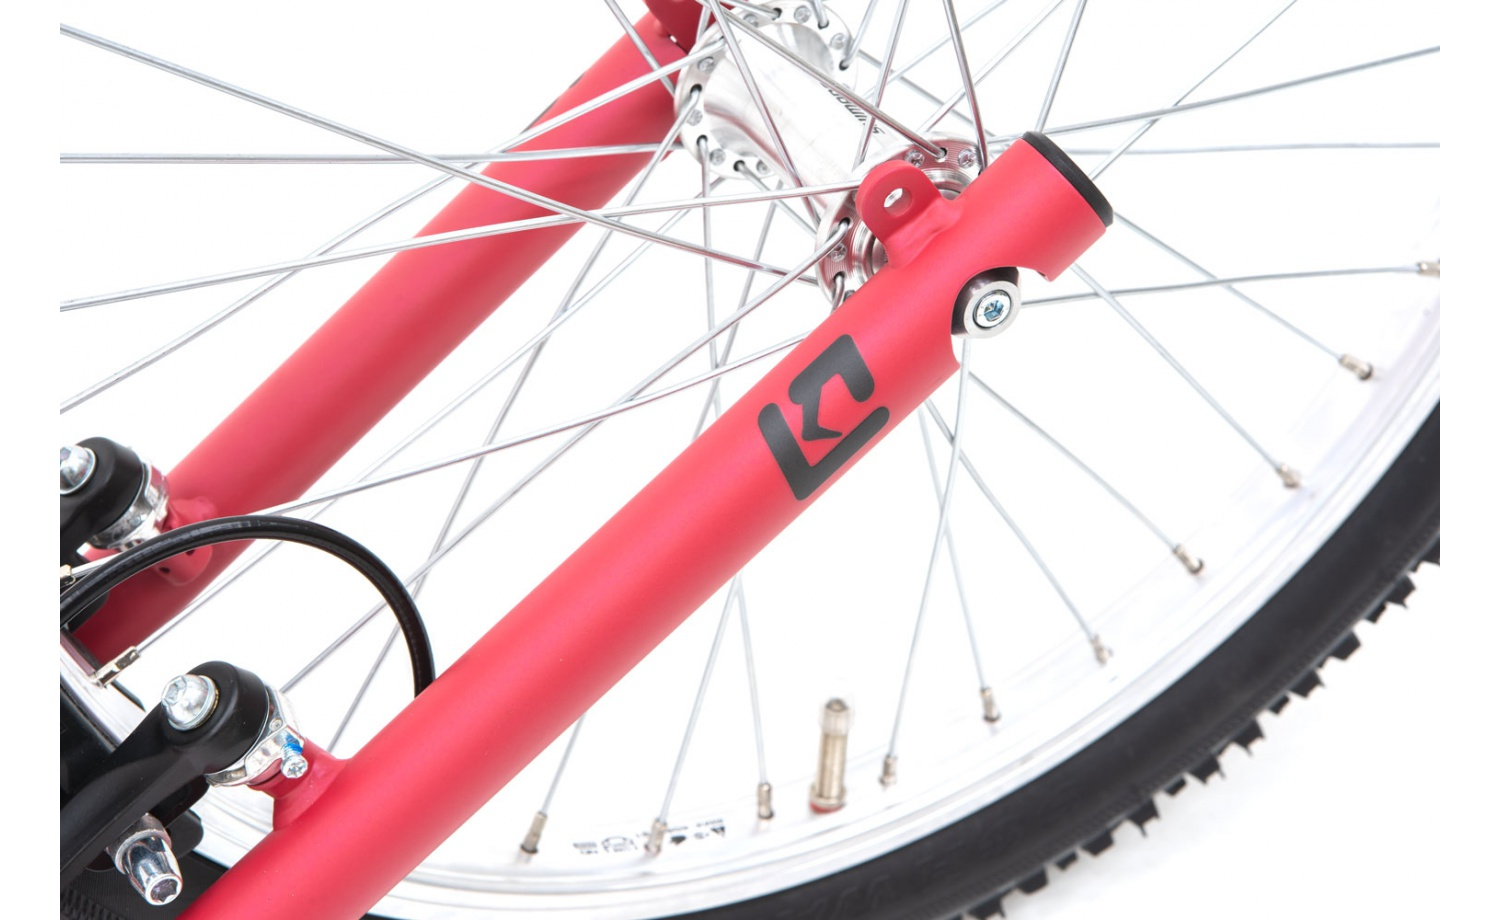 Footbike KOSTKA TOUR FUN+ (G5) - limited edition